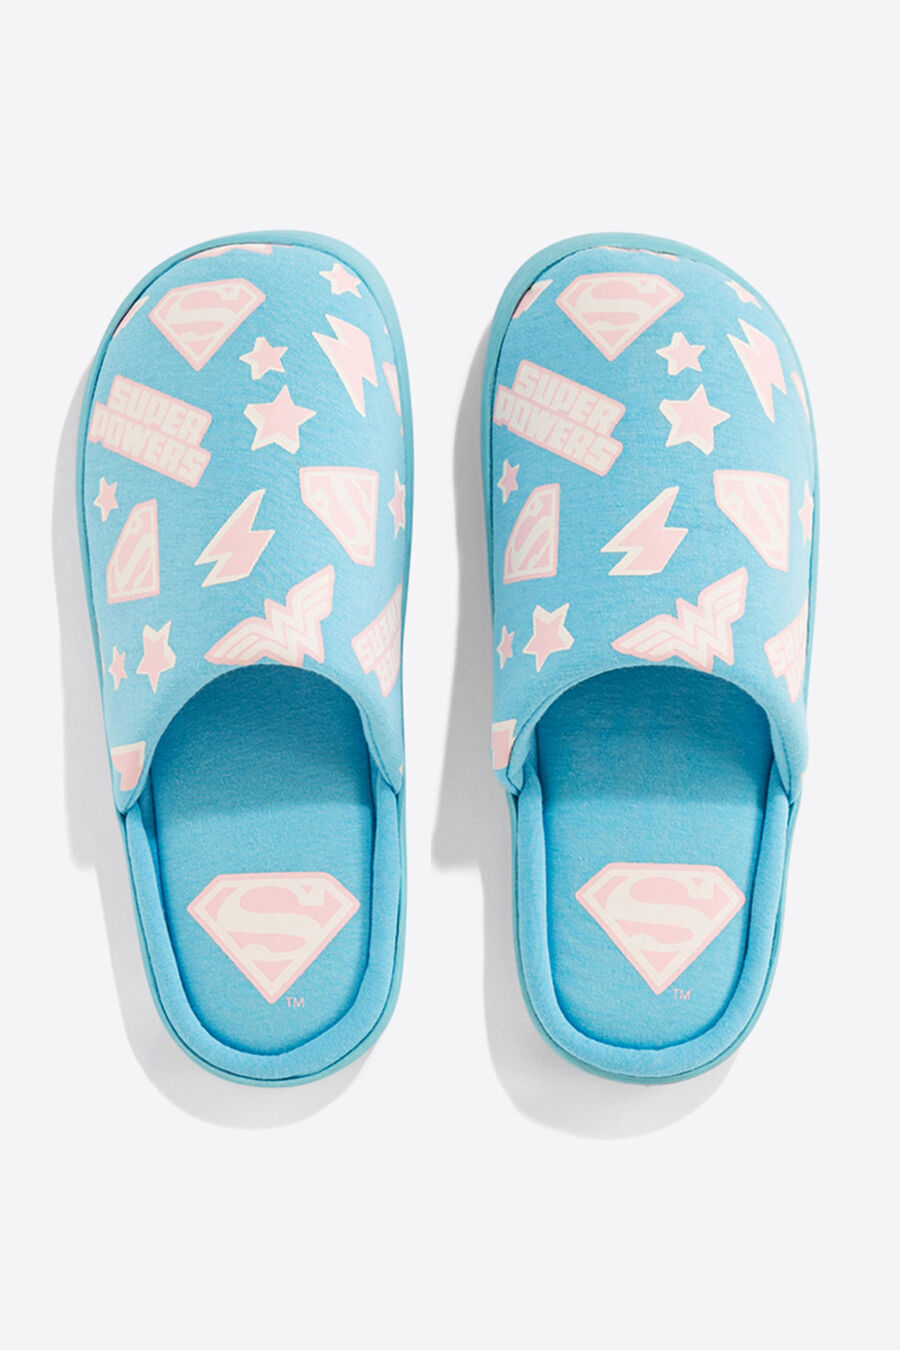 'Supergirl' slippers